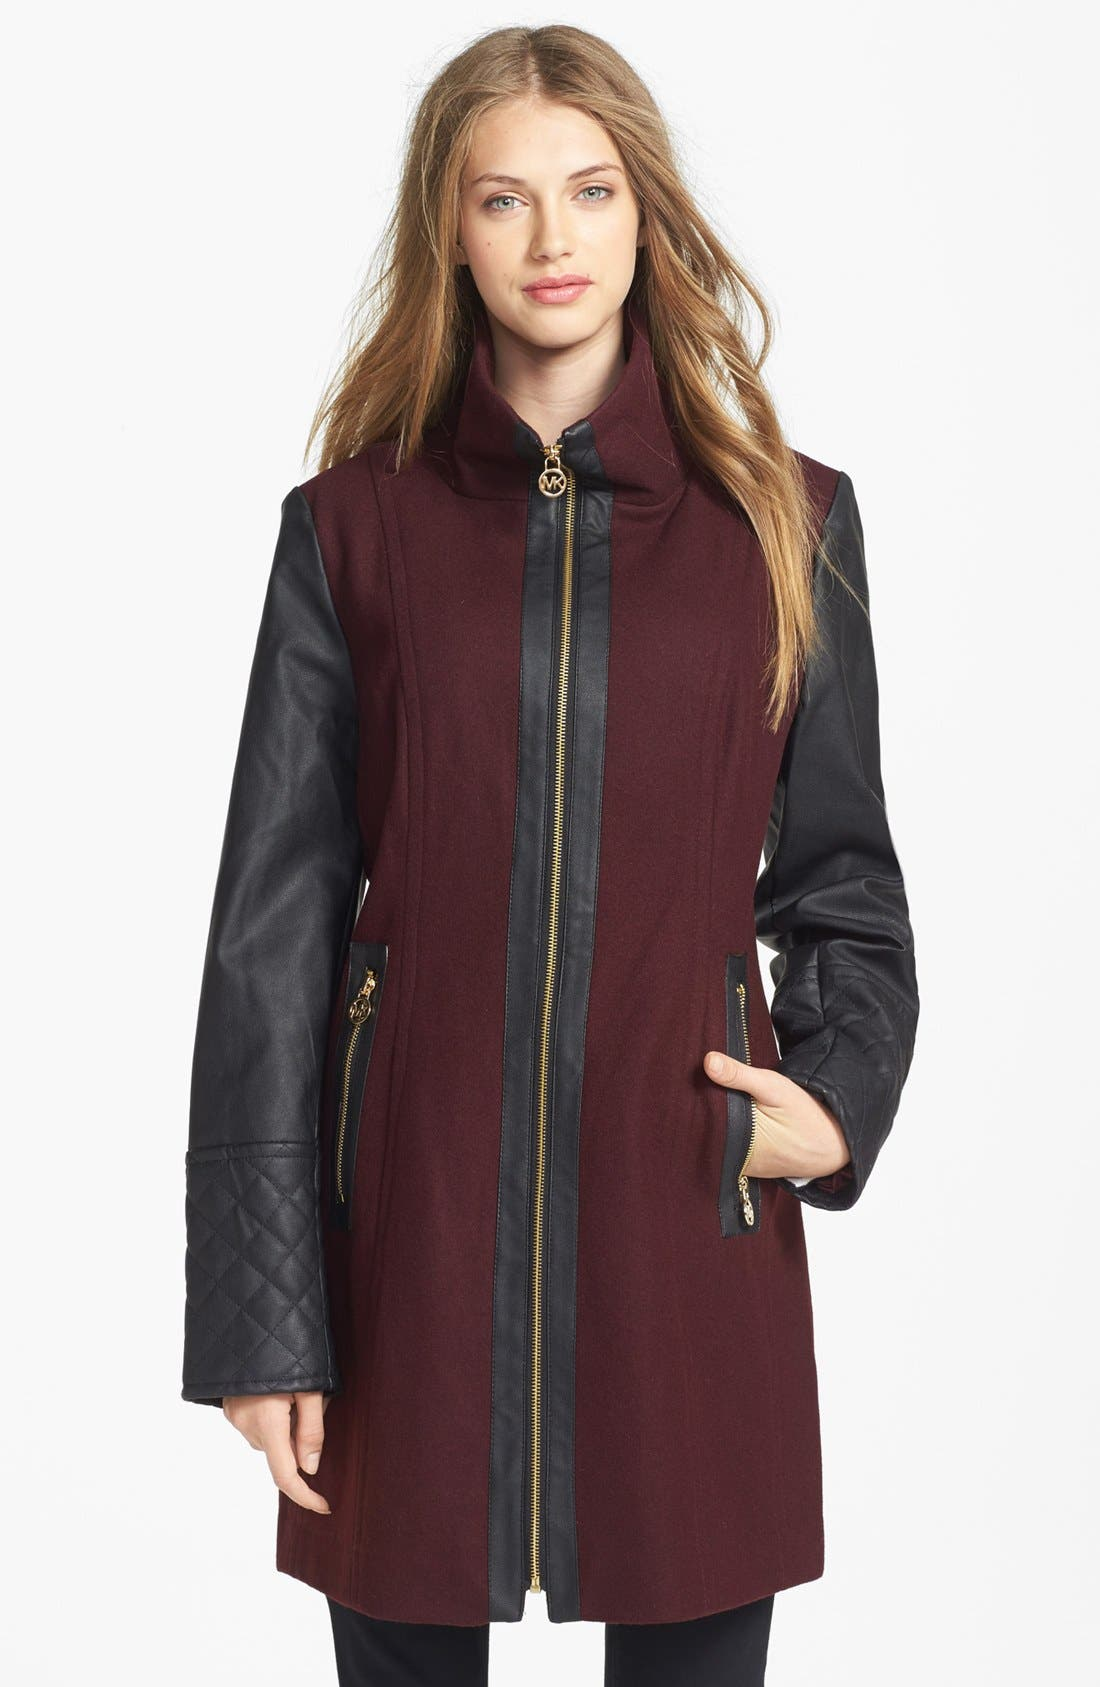 Alternate Image 1 Selected - MICHAEL Michael Kors Faux Leather Sleeve Wool Blend Coat